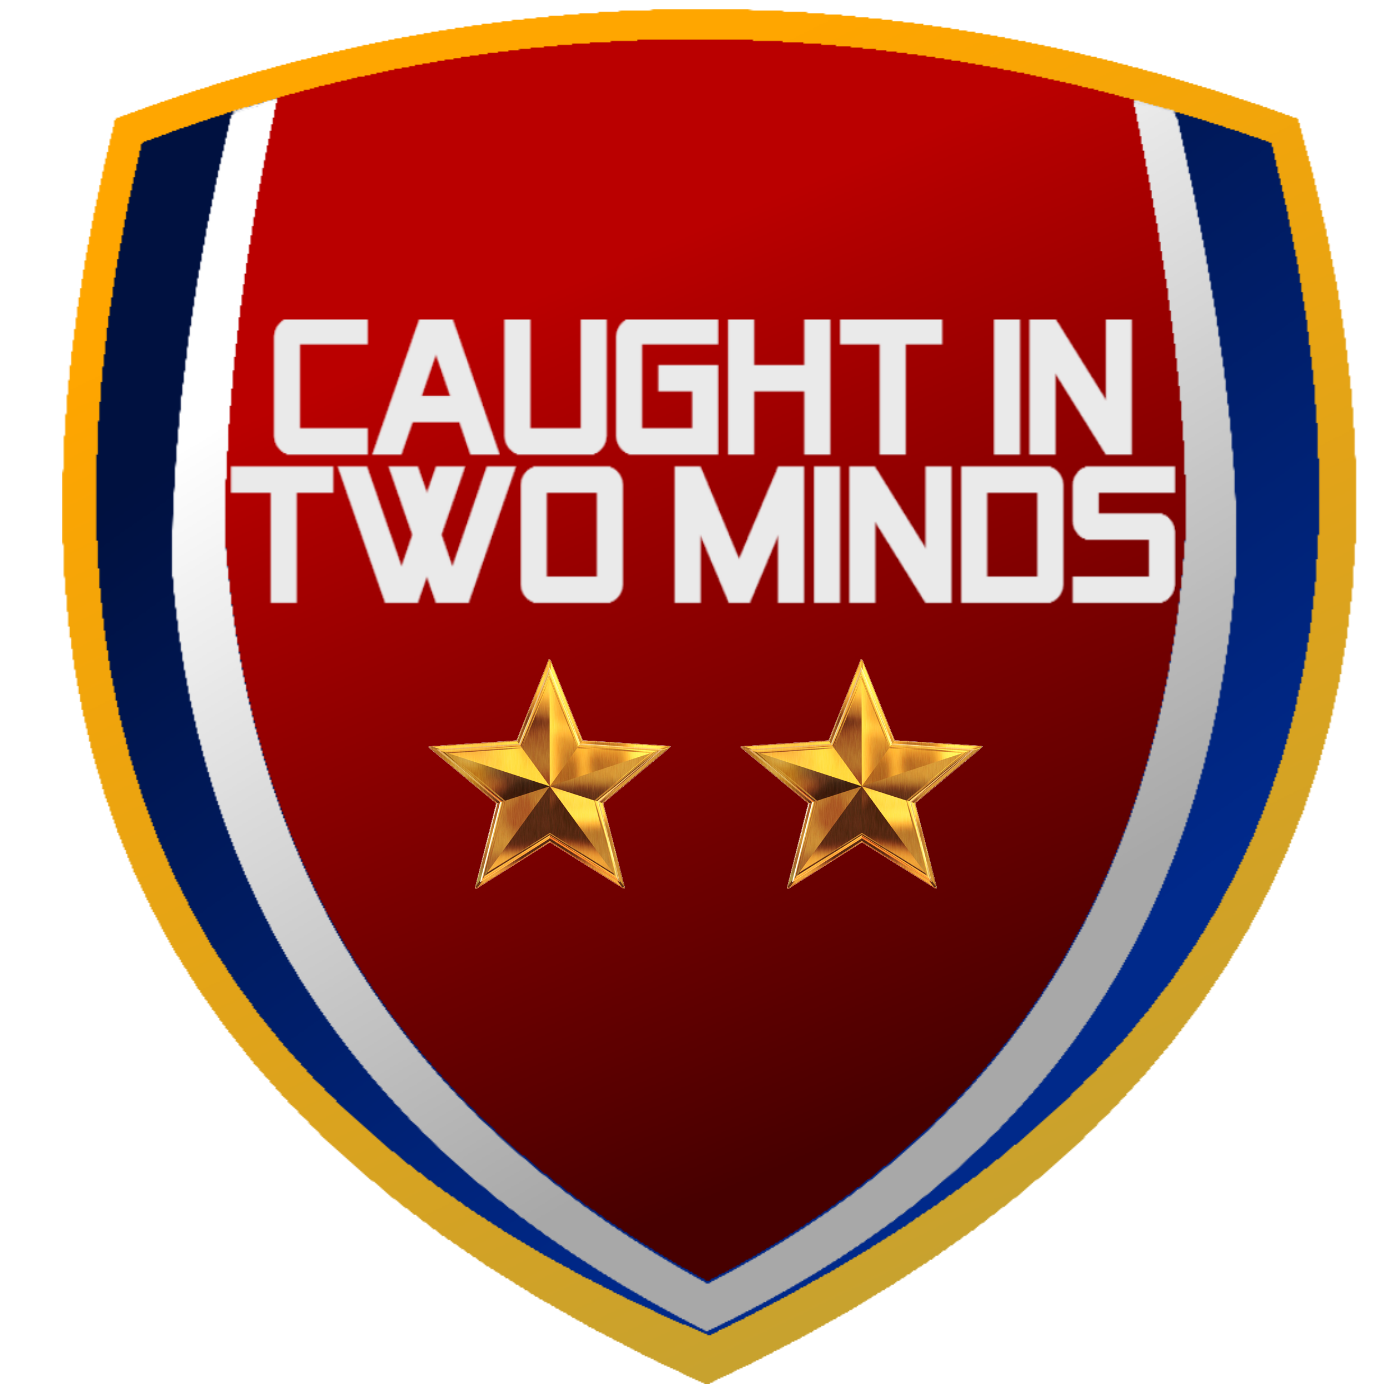 #5 - Caught In Two Minds